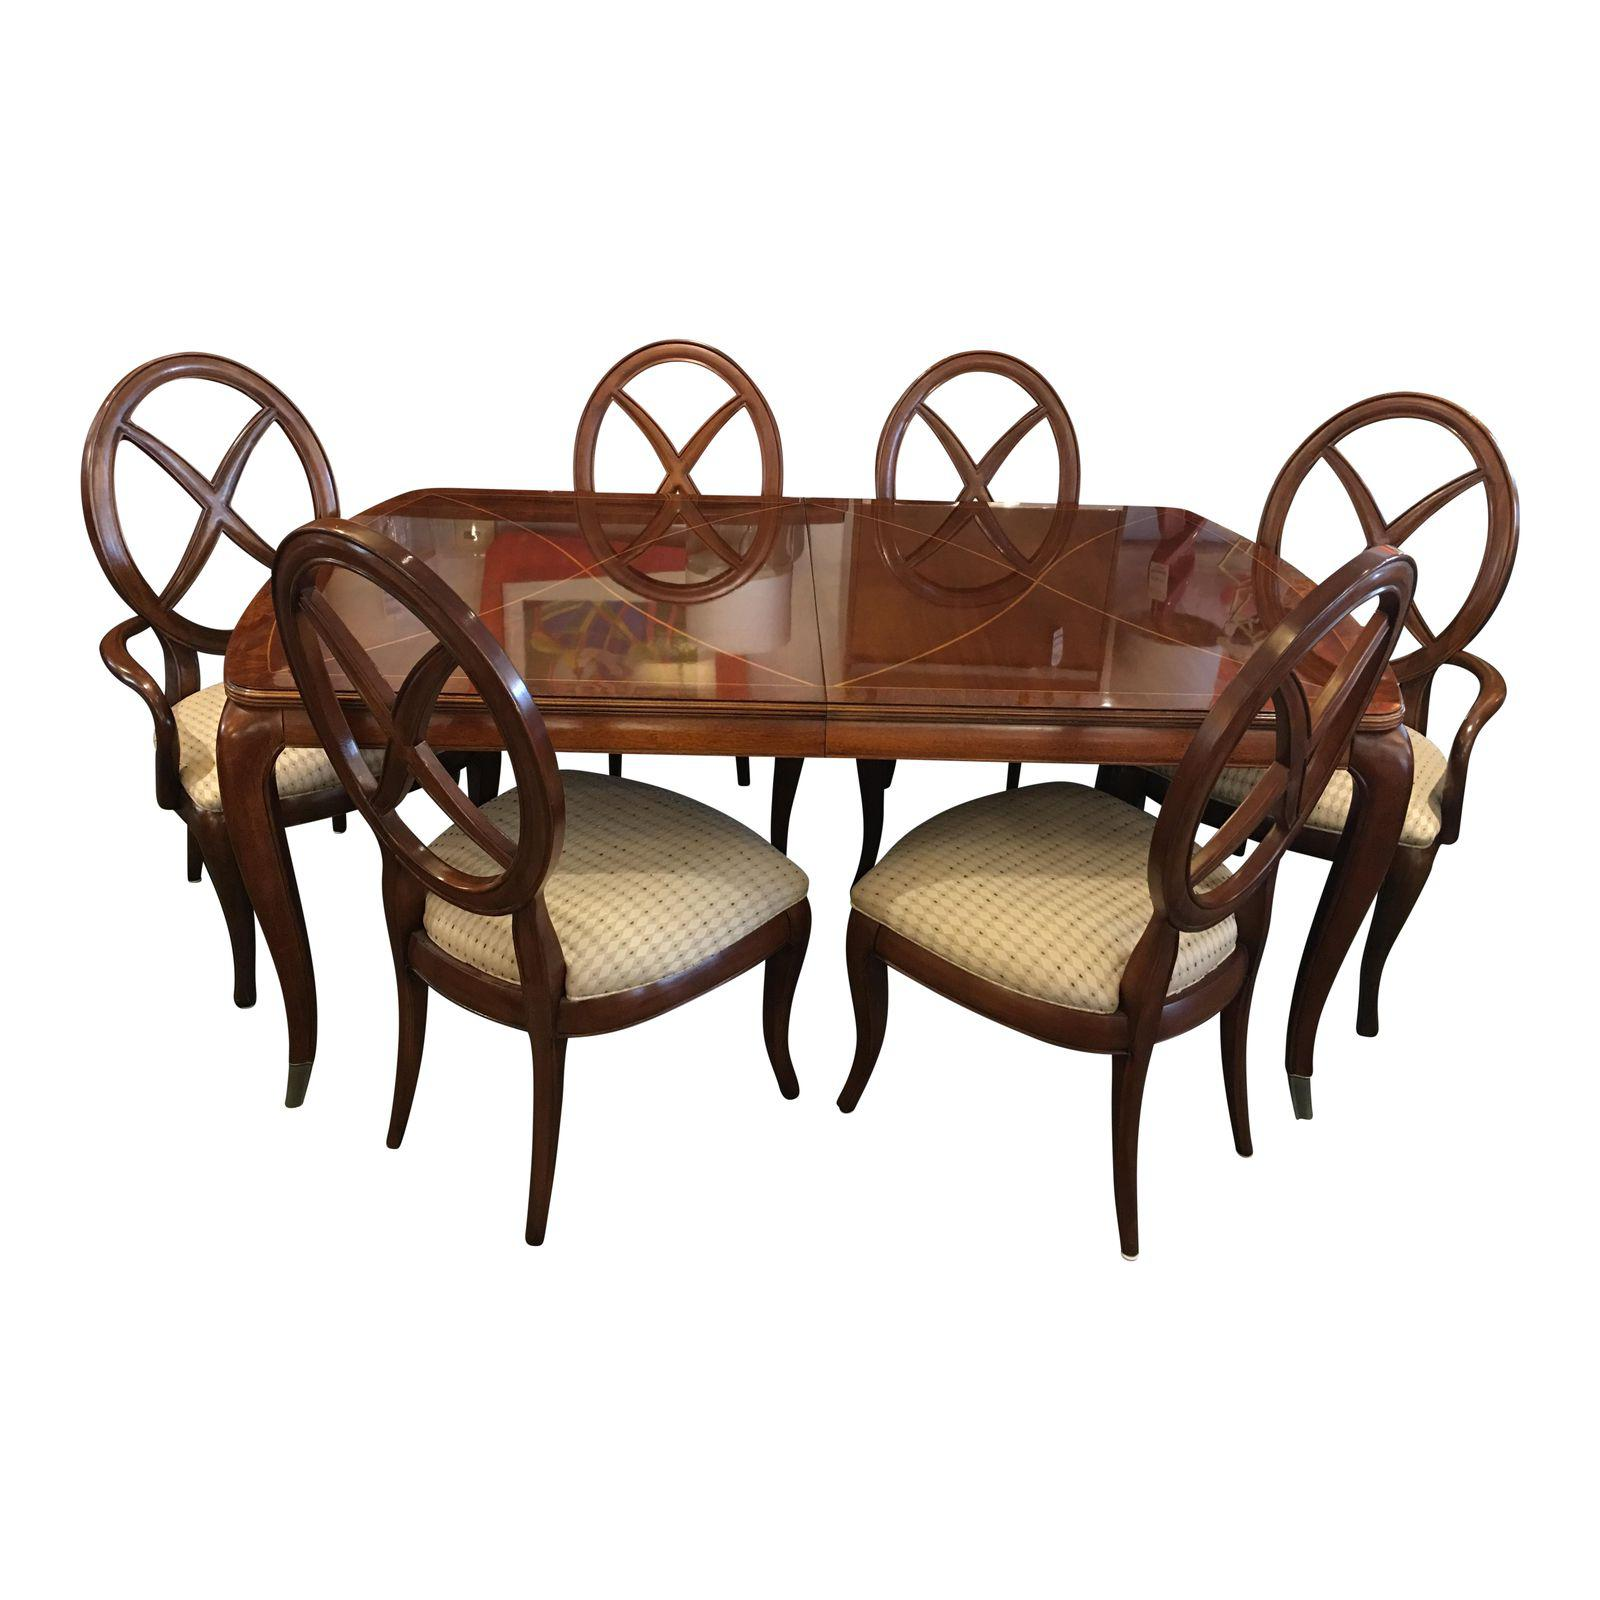 Thomasville   Bogart Collection Dining Table + 6 Chairs   Design Plus  Gallery